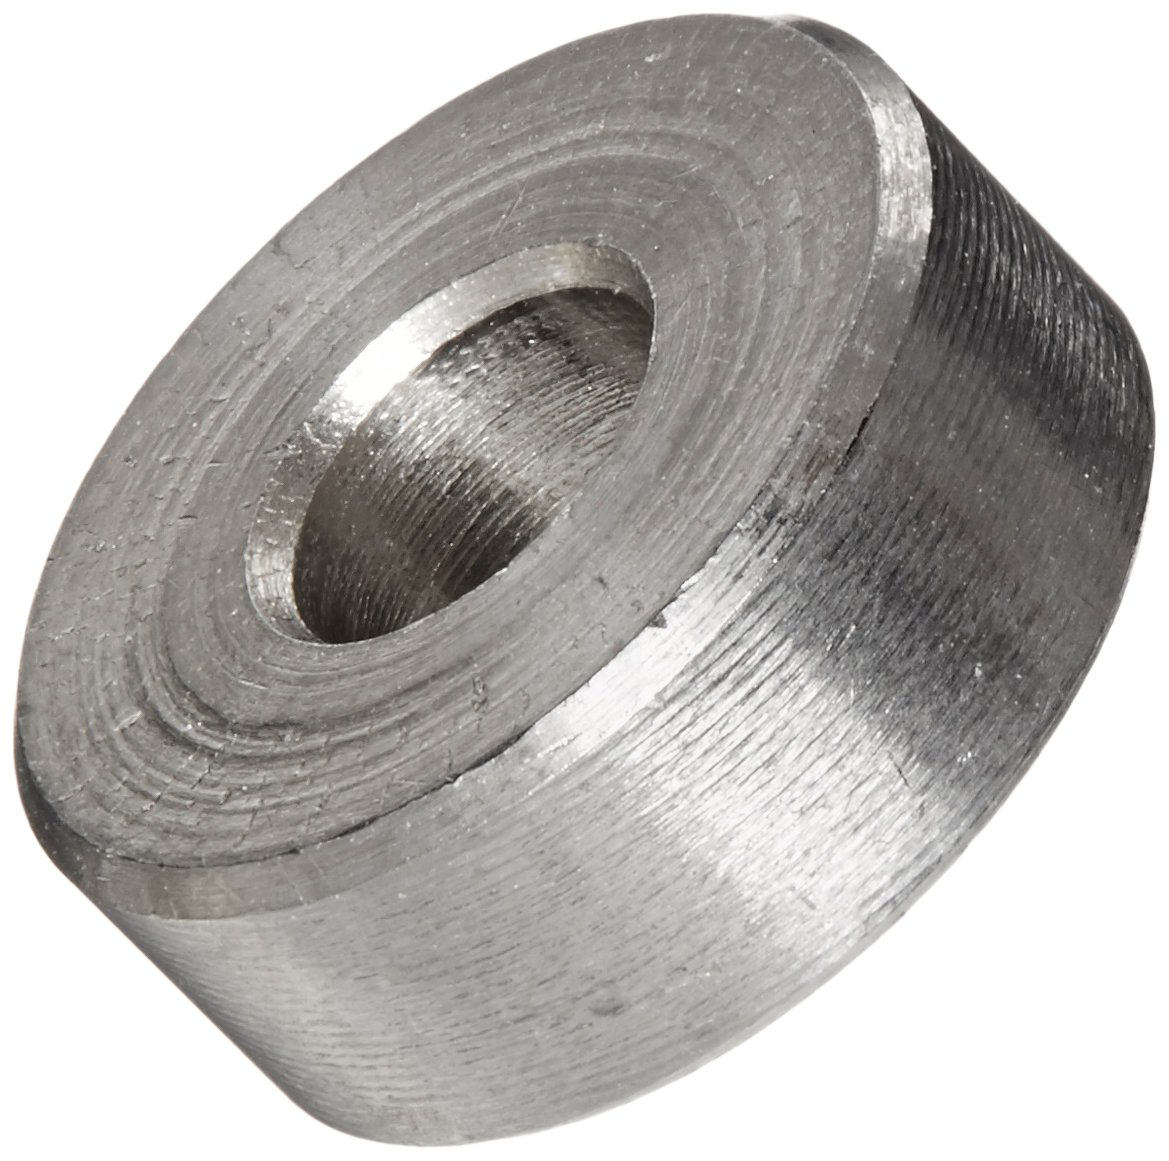 #10 Screw Size Round Spacer Plain Finish 0.192 ID 18-8 Stainless Steel Made in US Pack of 5 5//16 OD 5//16 Length